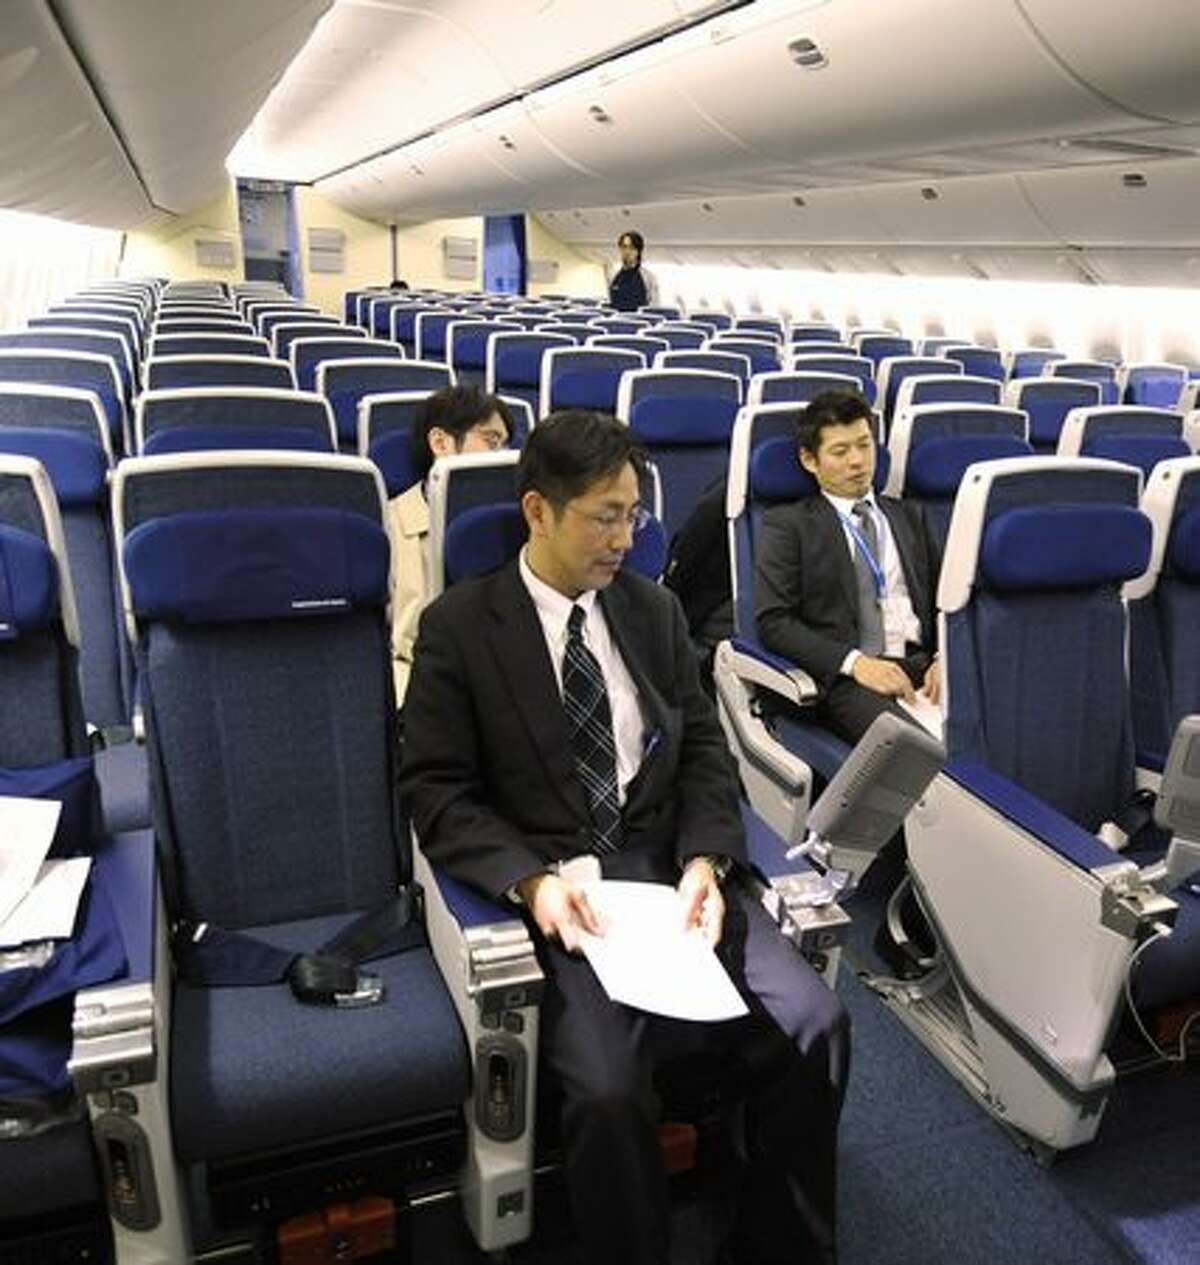 Employees of Japan's All Nippon Airways introduce economy-class seats in the company's new Boeing 777-300ER during a press preview at an ANA hangar in Narita International Airport, suburban Tokyo on April 16, 2010. The new aircraft is scheduled to commence flights from April 19 on the Narita-New York route.